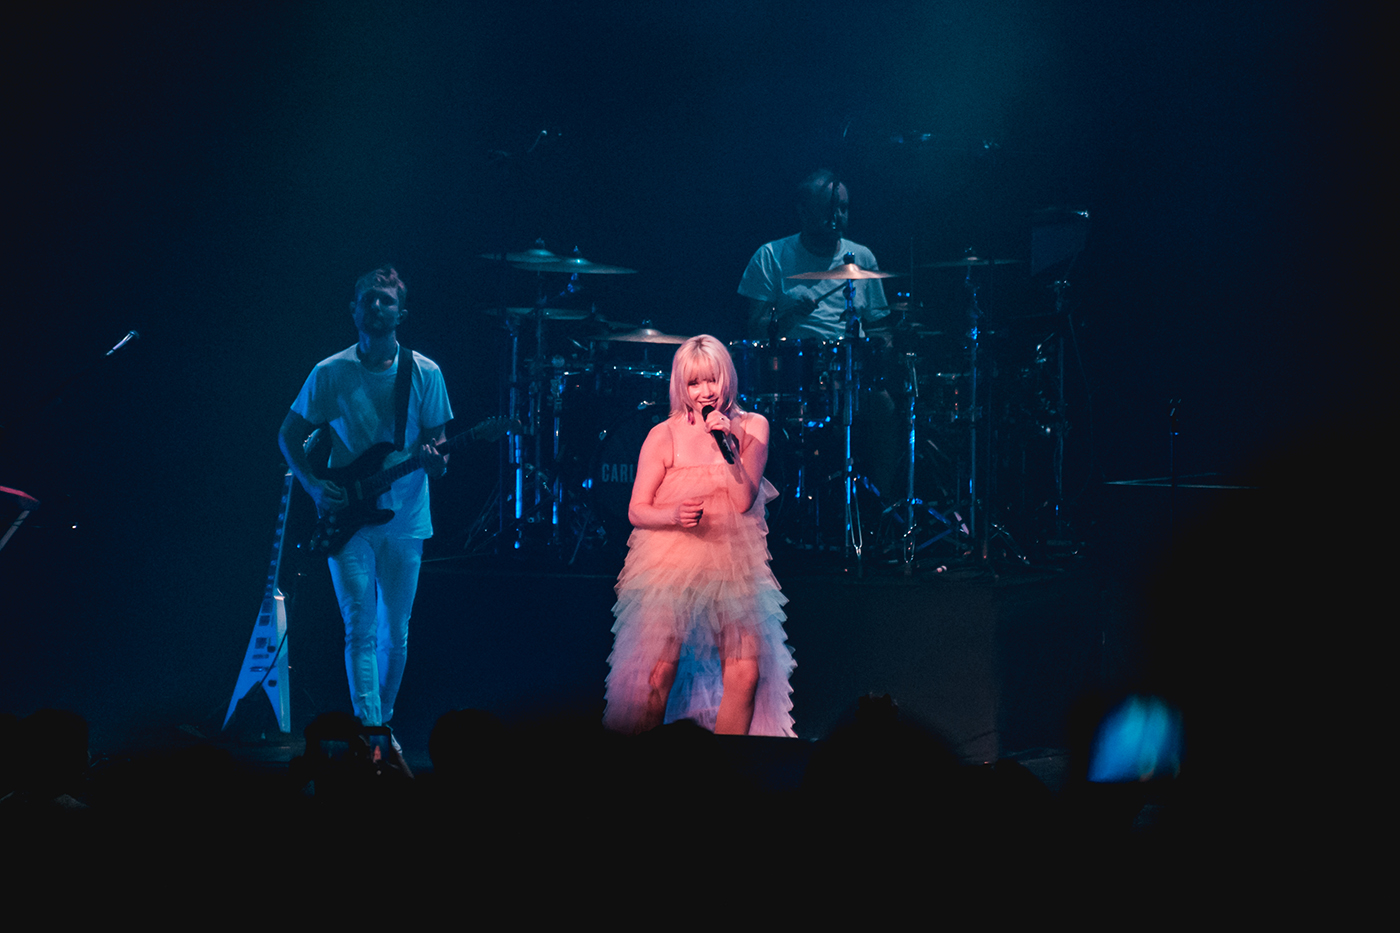 'GAY ICON.' Carly Rae Jepsen has been popular in the LGBT community for her celebrated hits. Photo by Jeremy Caisip/Rappler